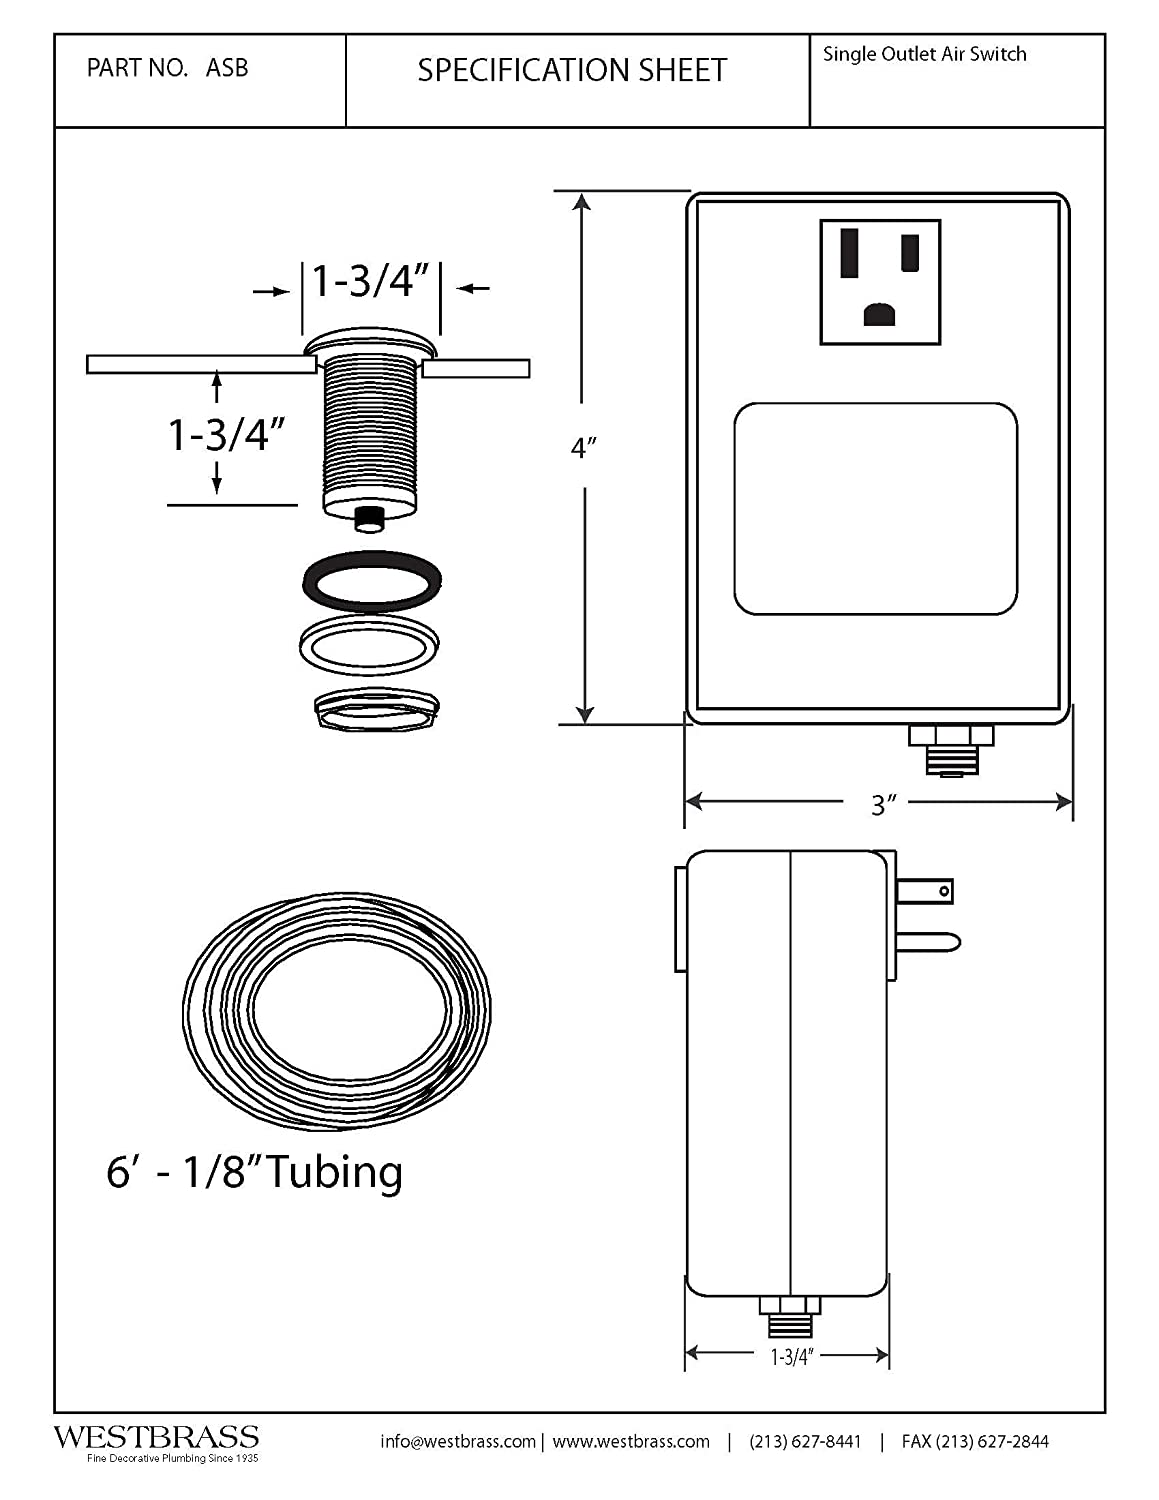 Hansen P4 Level Switch Wiring Diagram Free Download Air Westbrass Disposal And Single Outlet Control Box Electric Actuator At